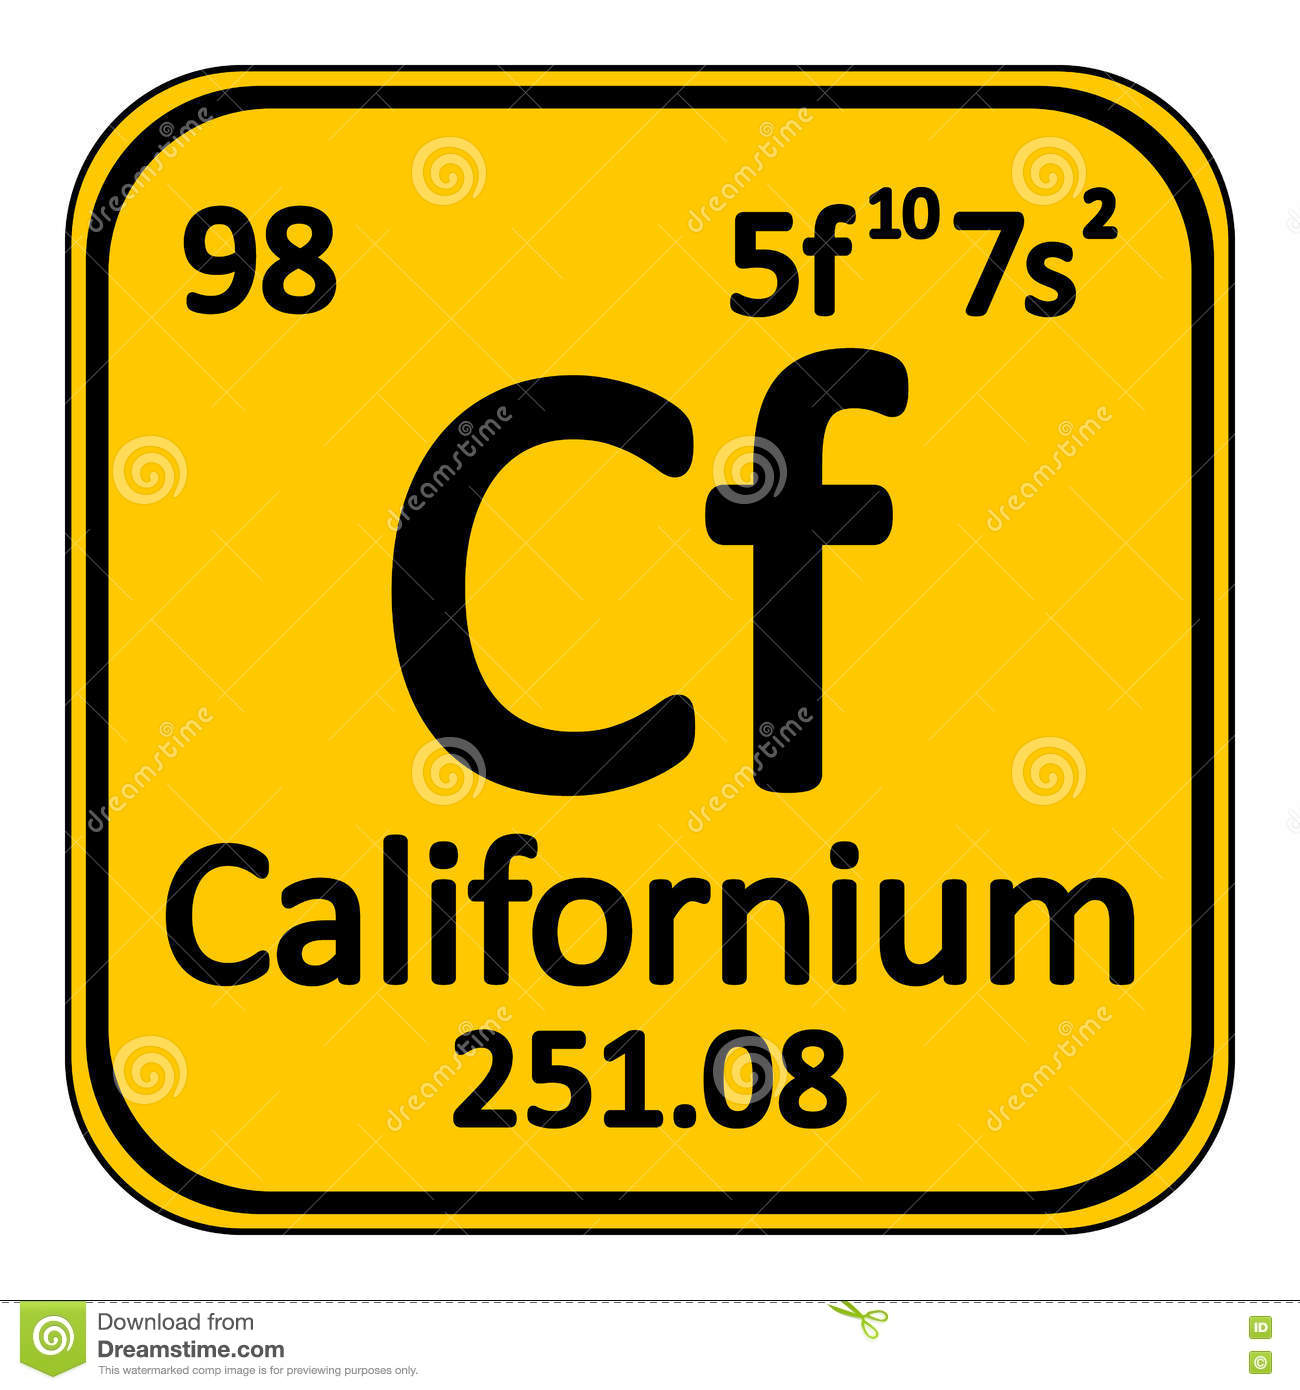 Periodic table element californium icon stock illustration royalty free illustration download periodic table element californium gamestrikefo Images